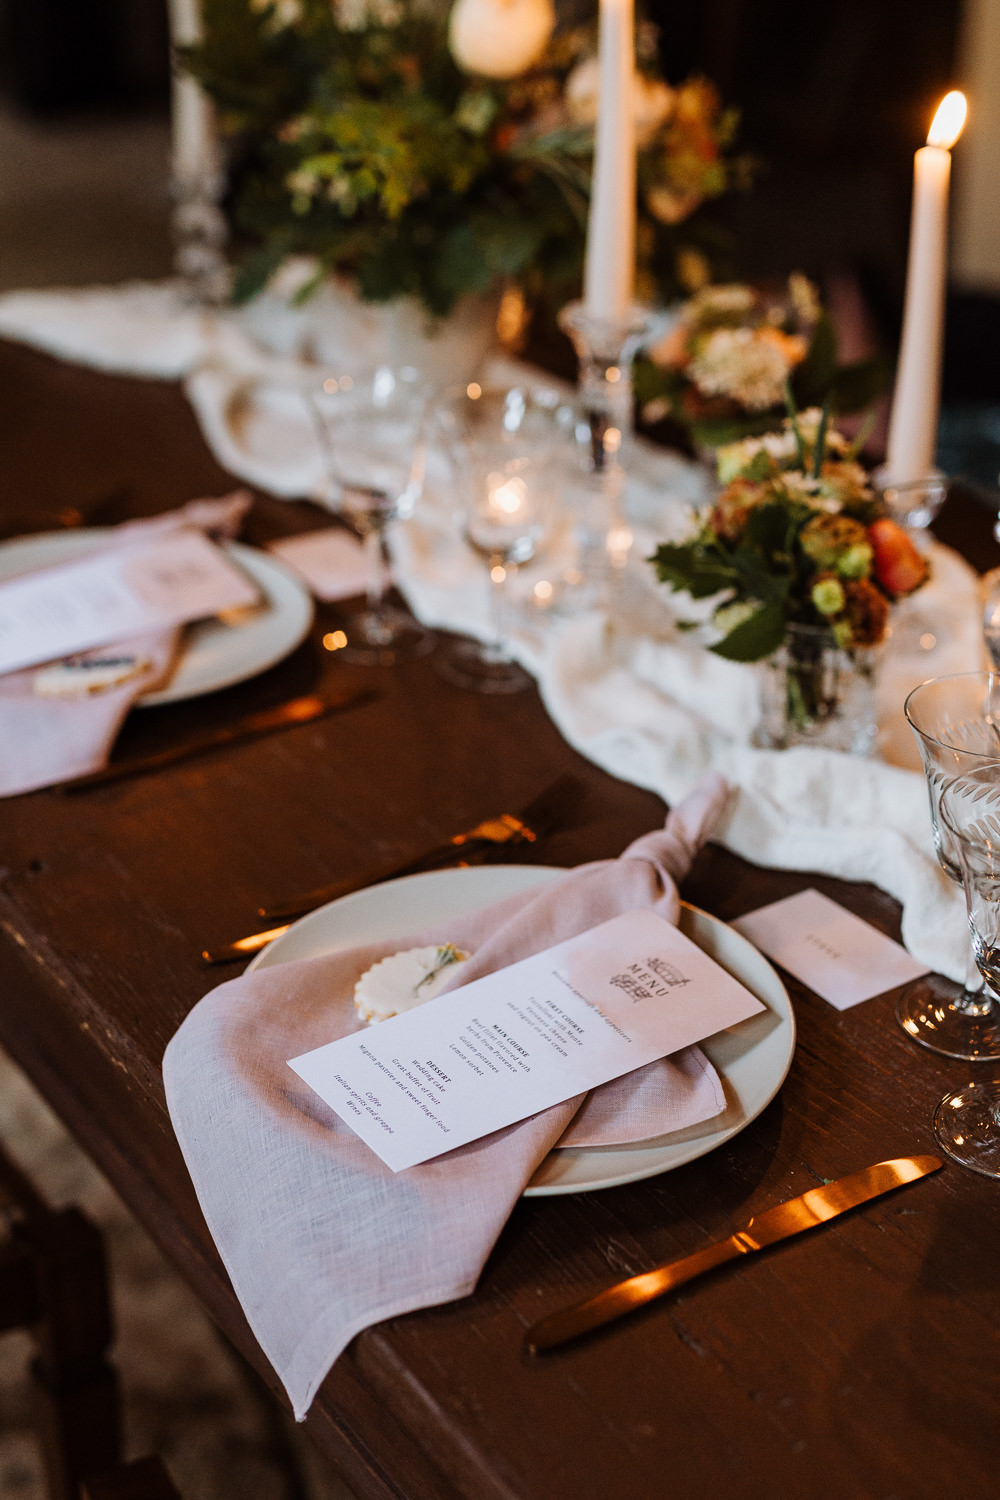 Place Setting Decor Table Natural Wedding Ideas Frame Of Love